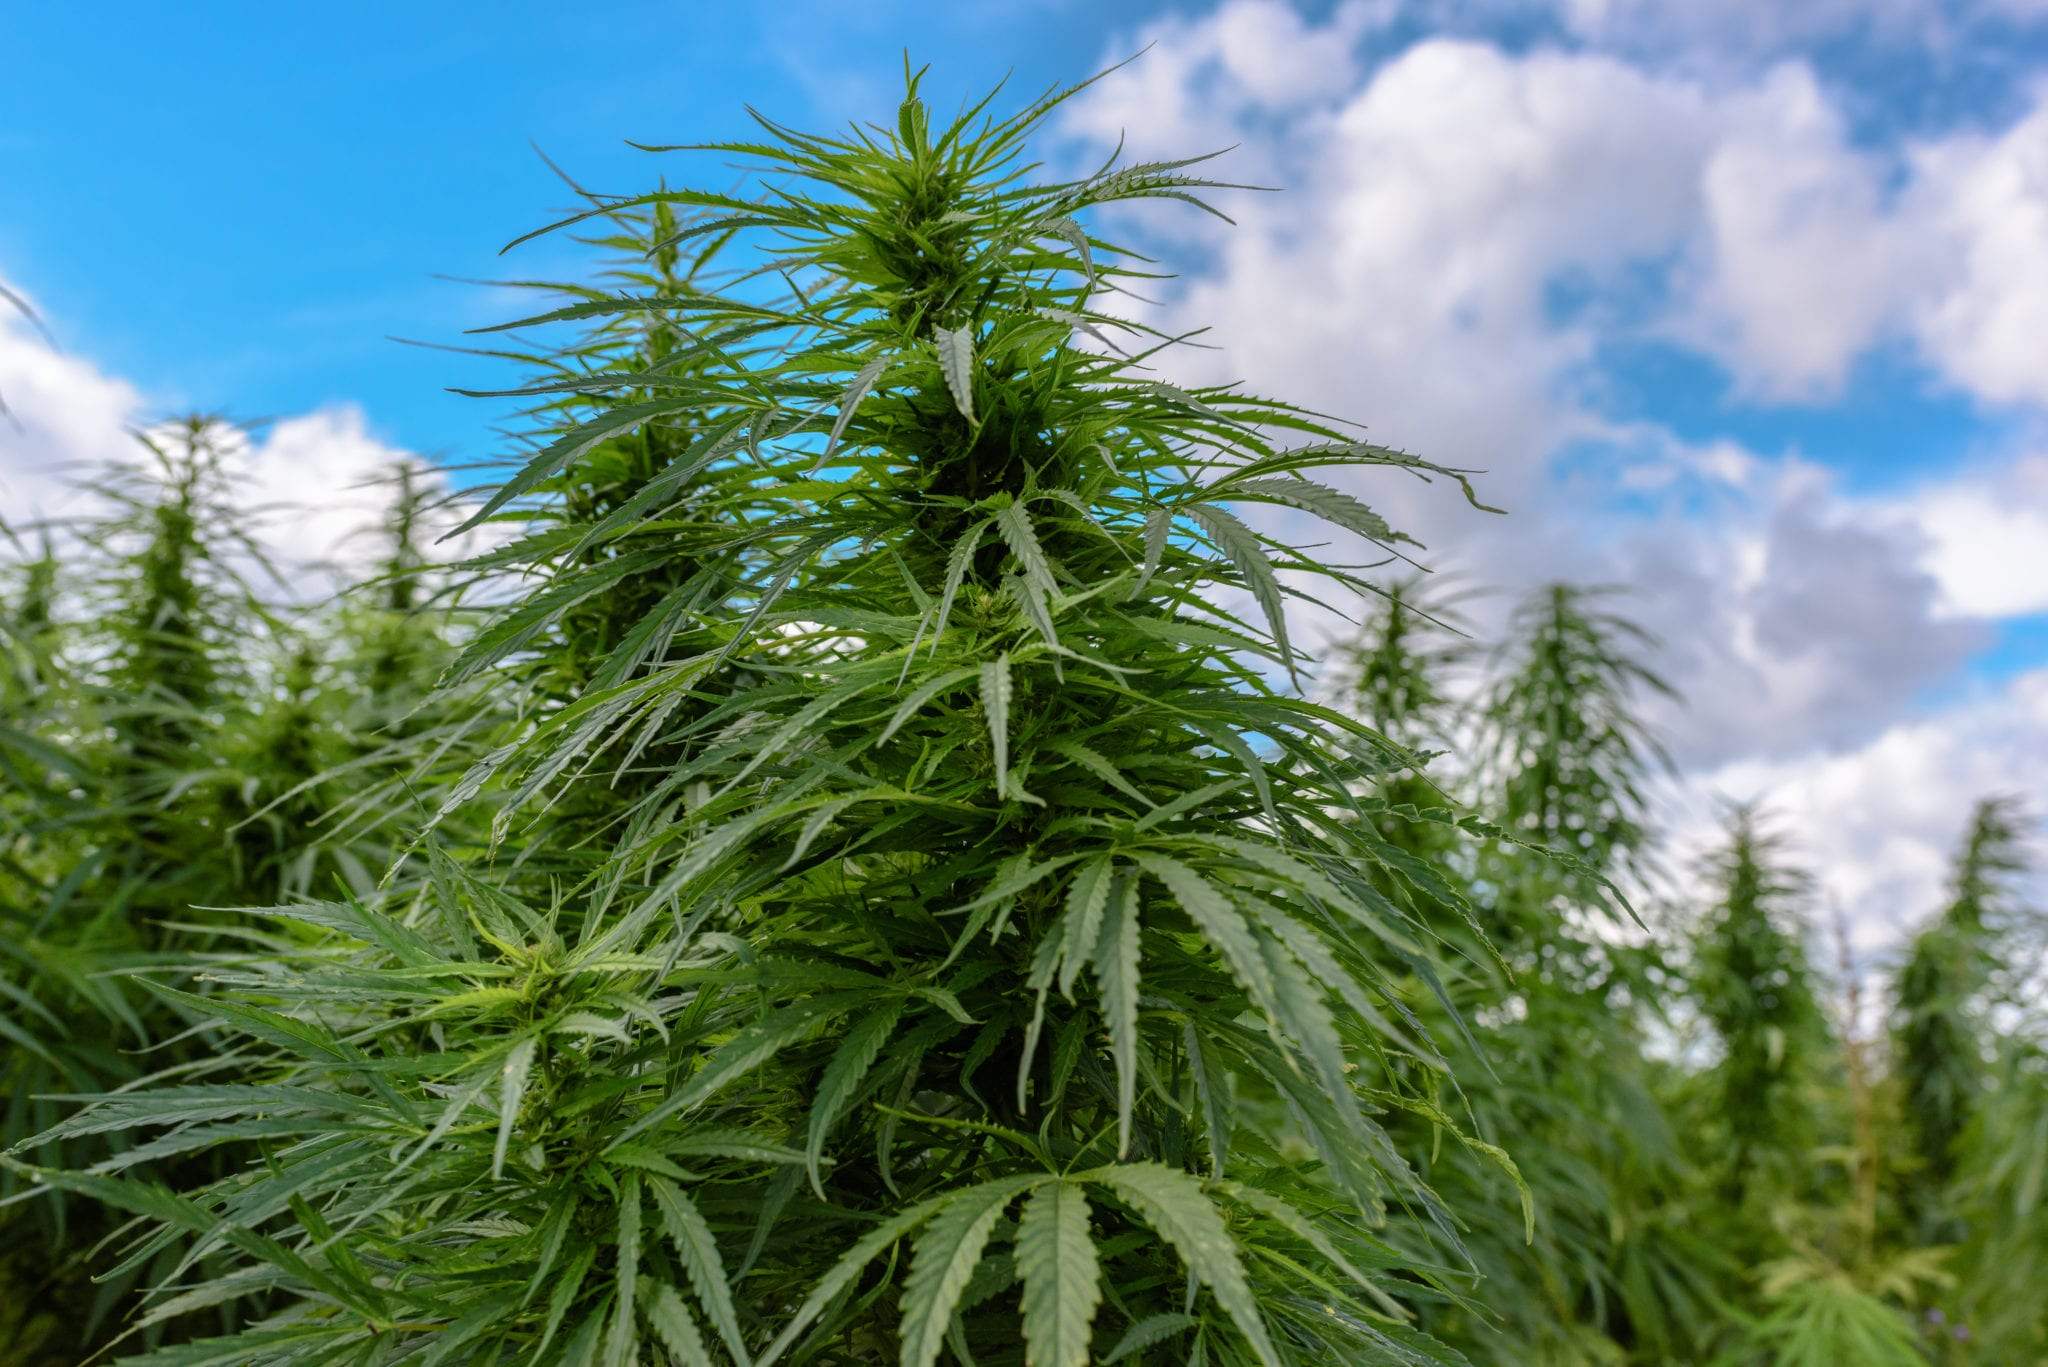 48North produced some very cheap outdoor weed this quarter, but not enough